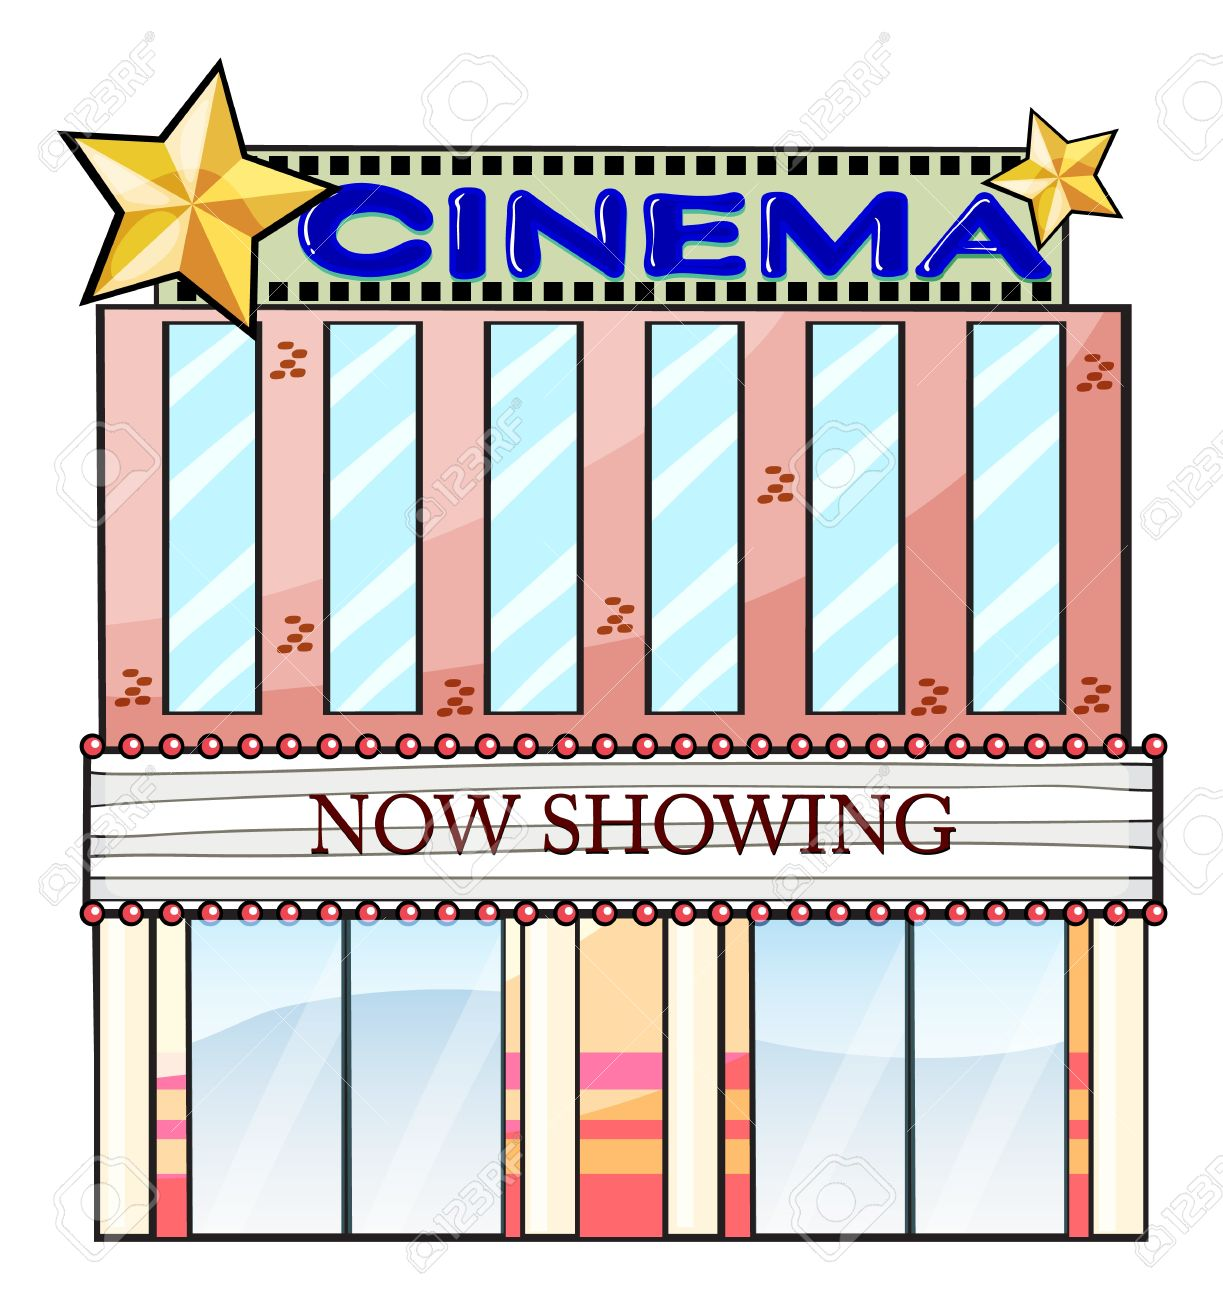 Illustration Of A Cinema Theater Building On A White Background.